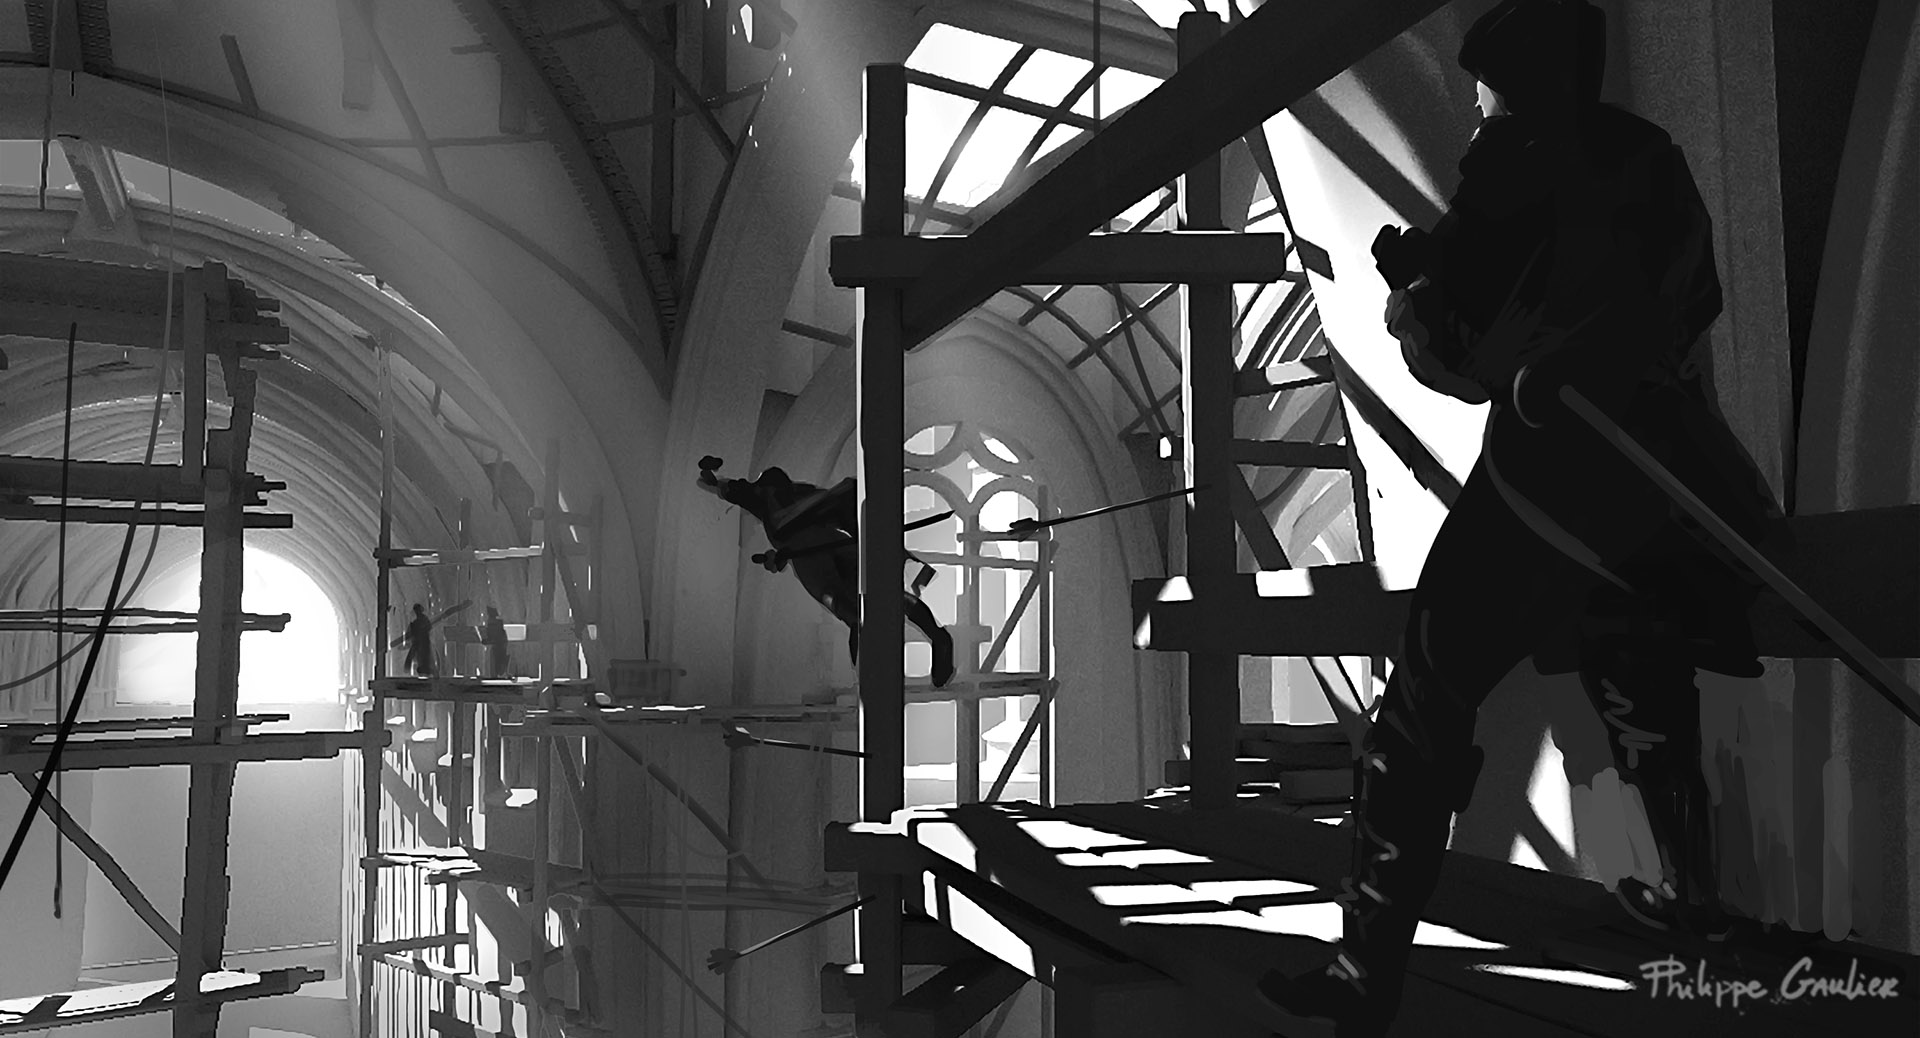 Assassin's Creed 2016 Film Concept Art by Philippe Gaulier